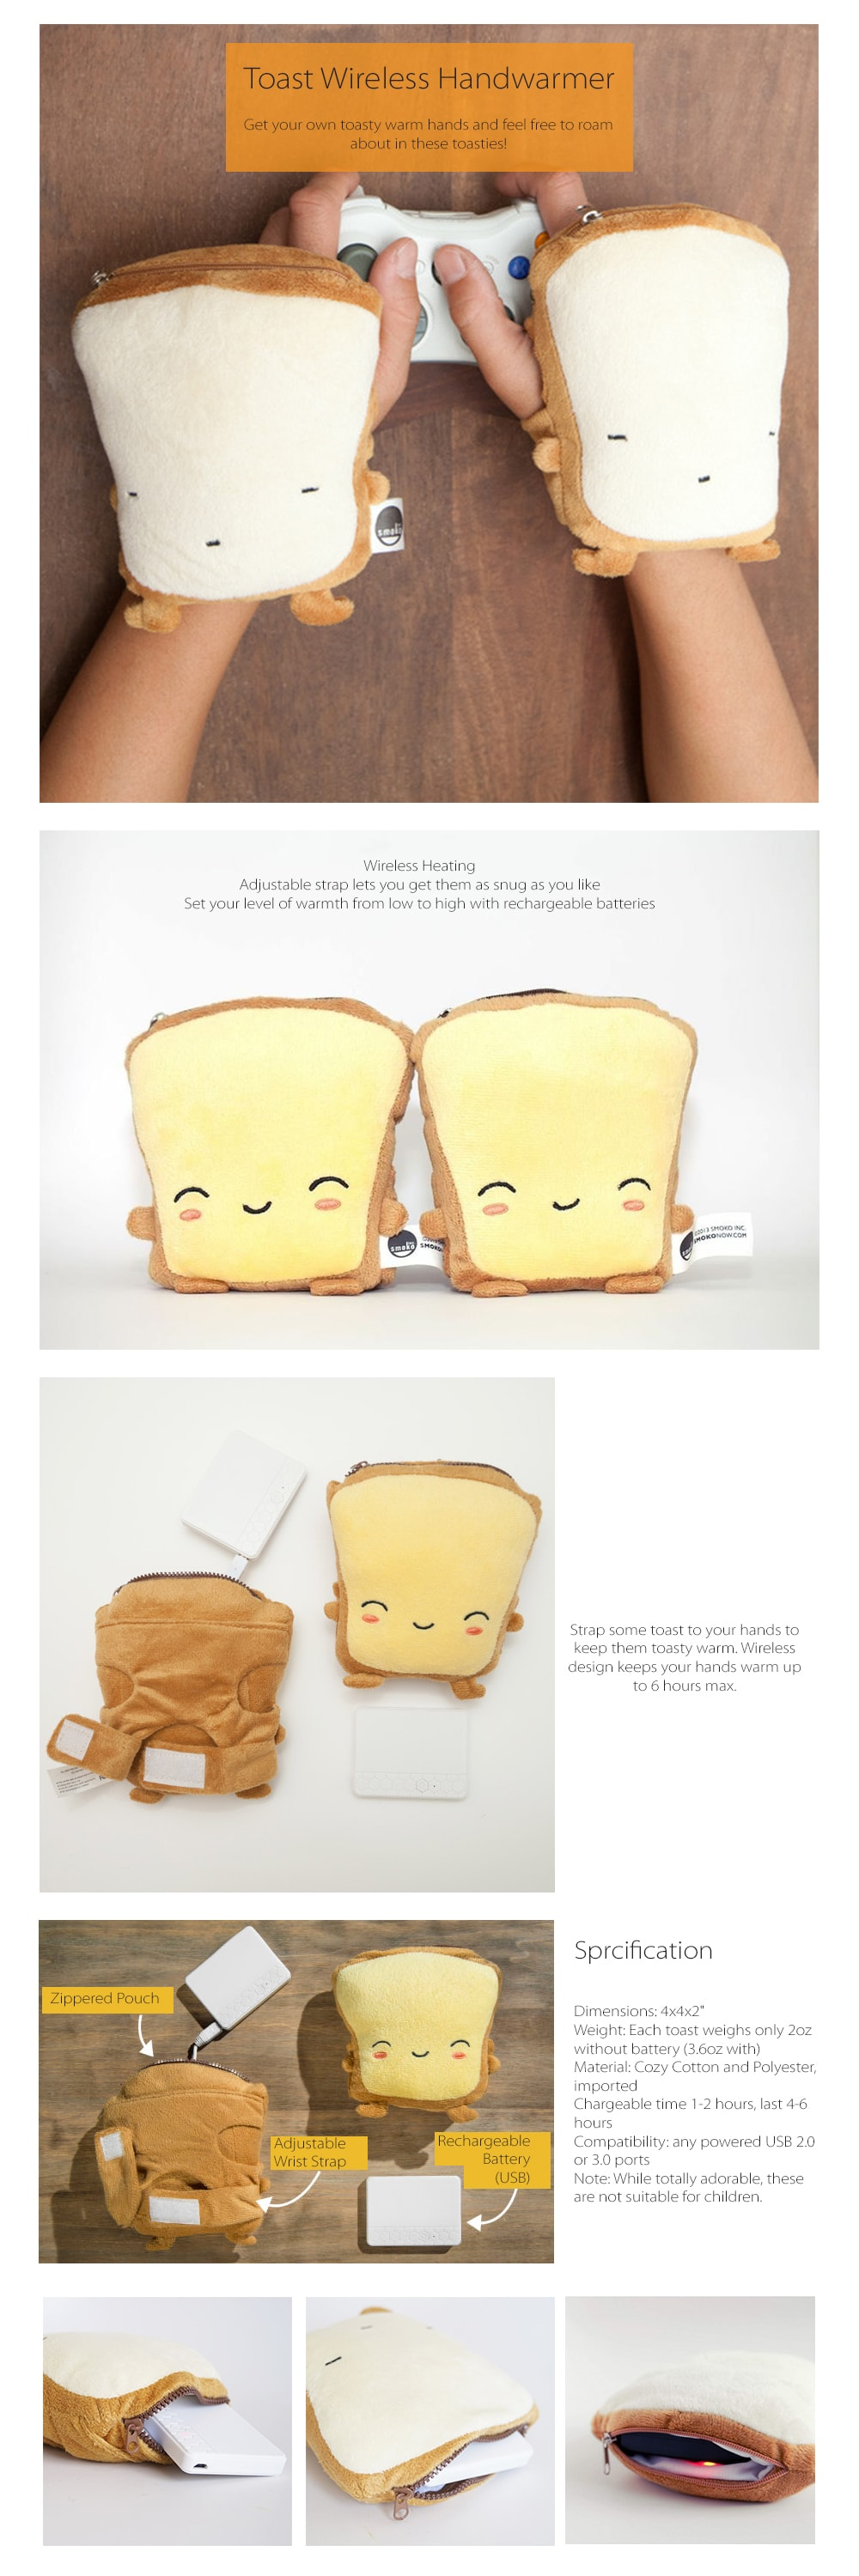 Toast Wireless Handwarmers - Butta Squishy And Adorable